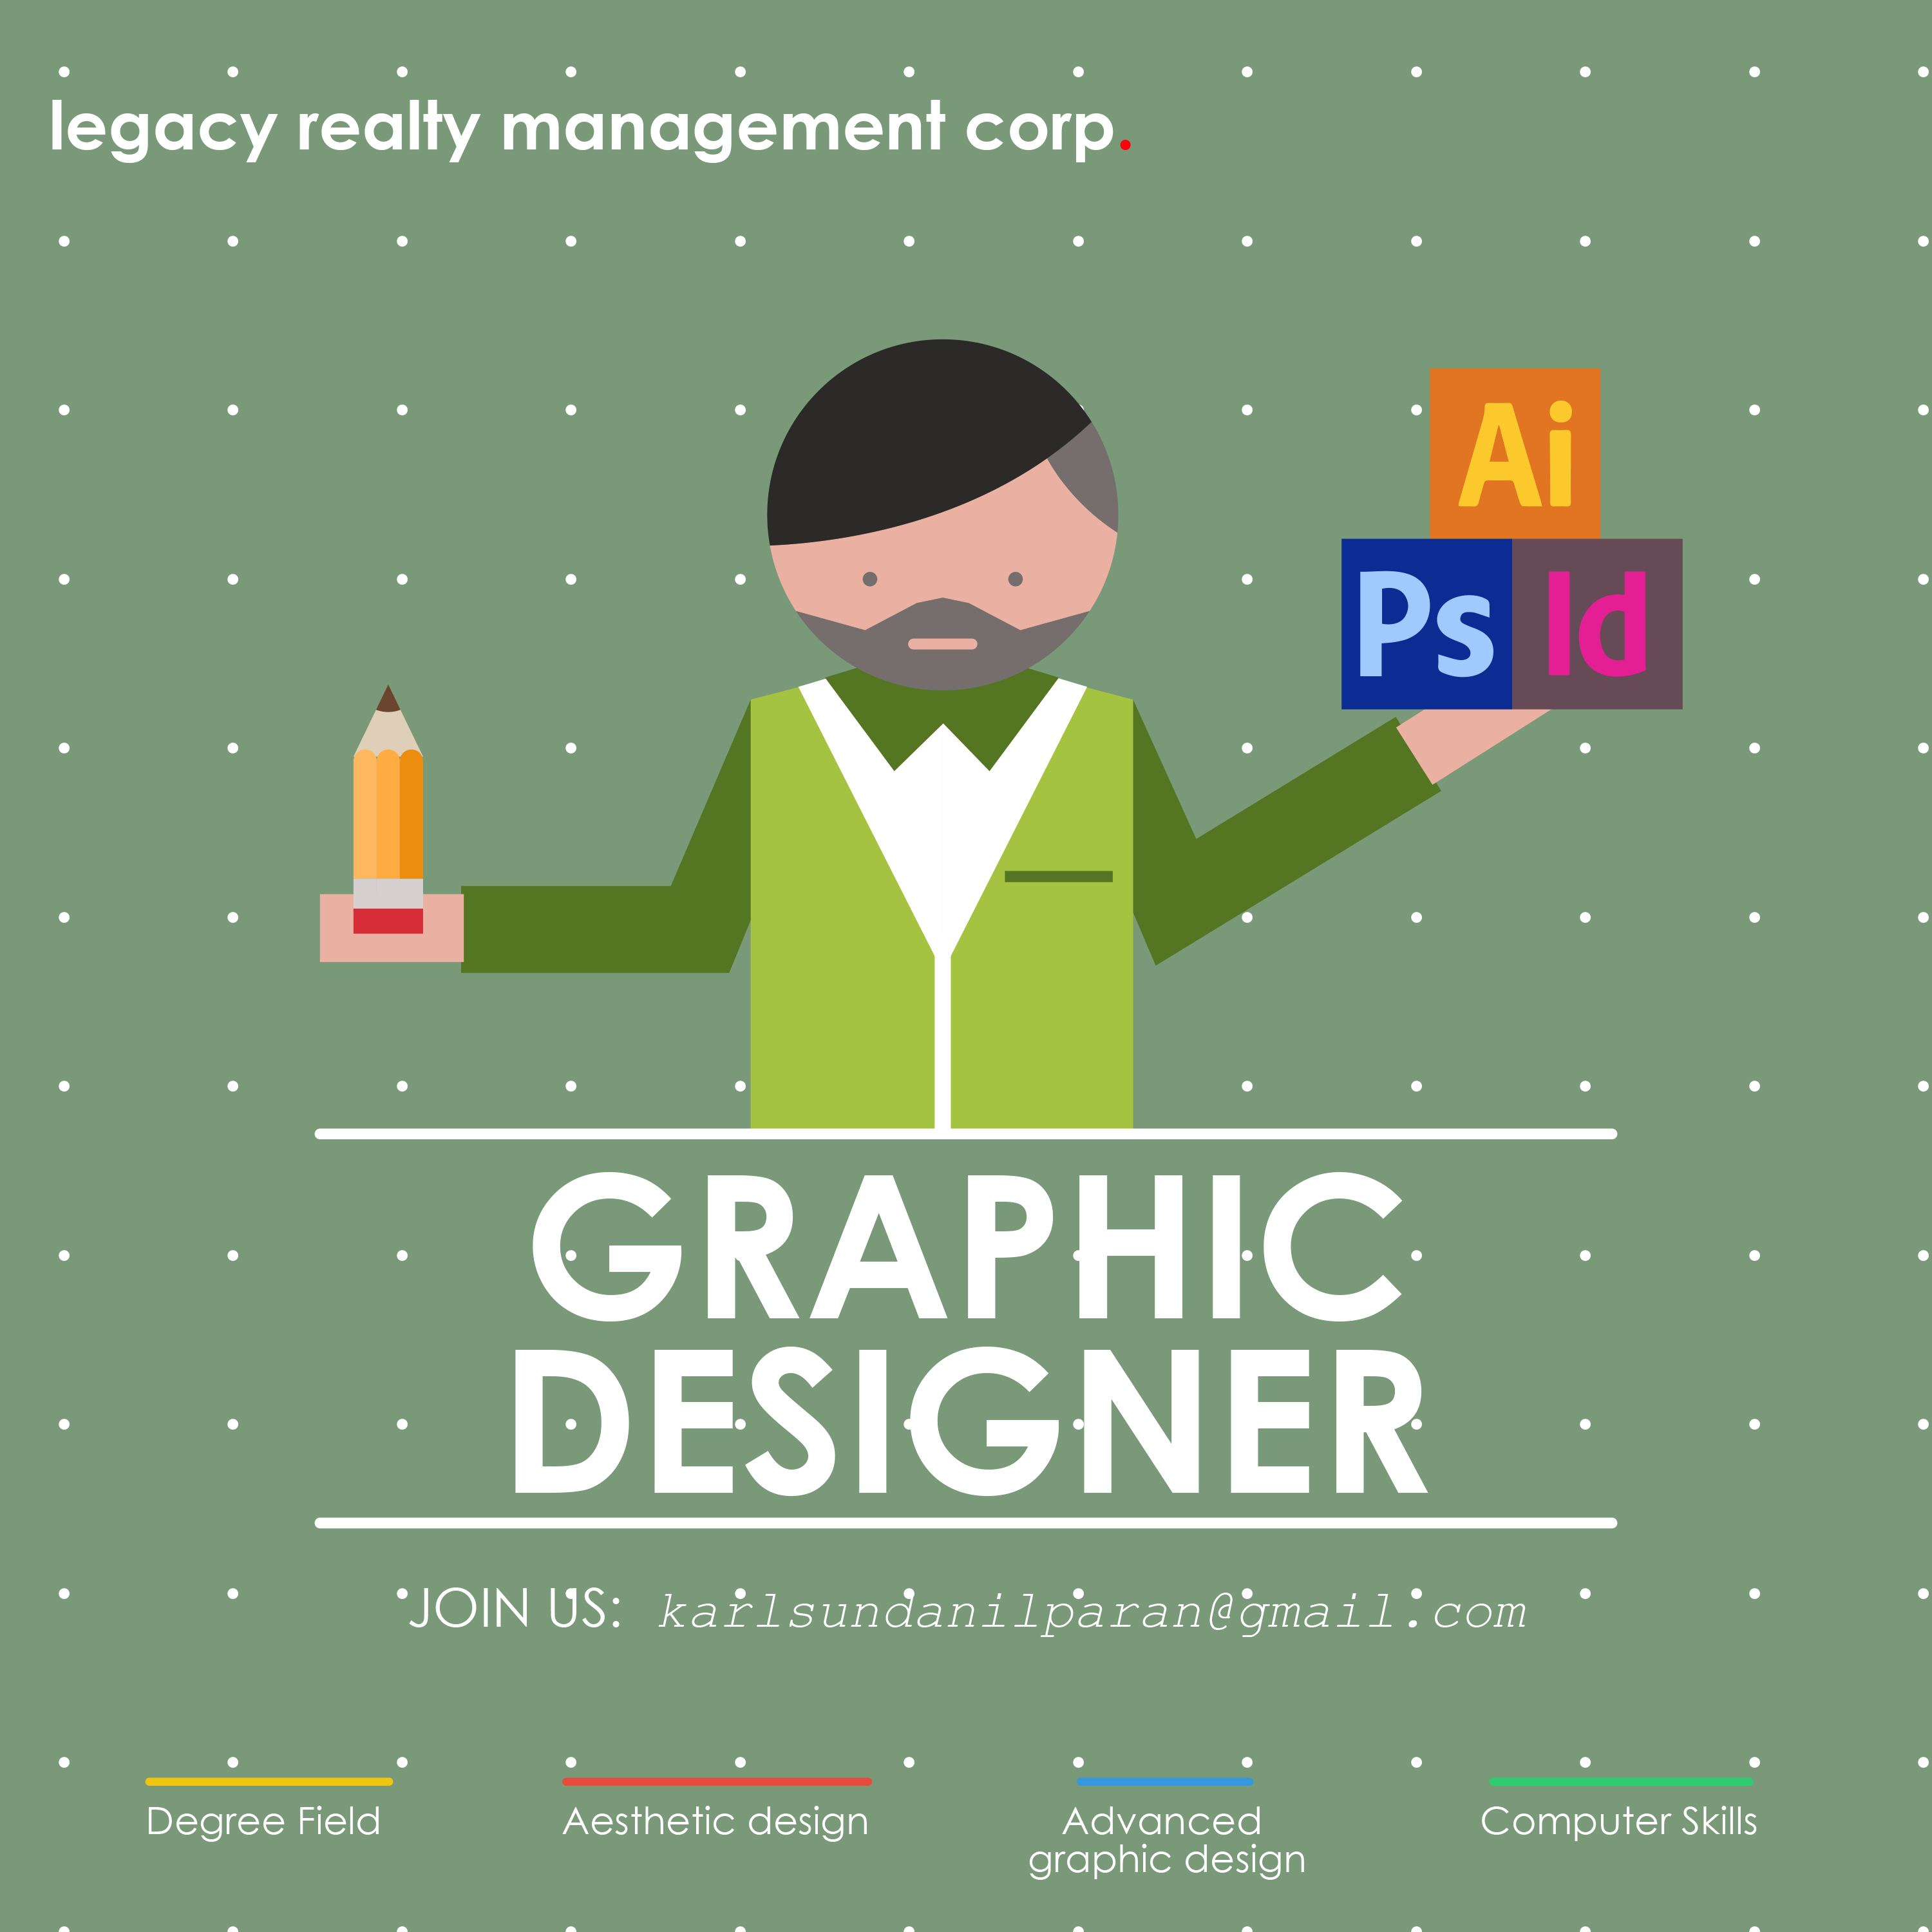 Hiring Graphic Designer Poster Graphic Design Collection Job